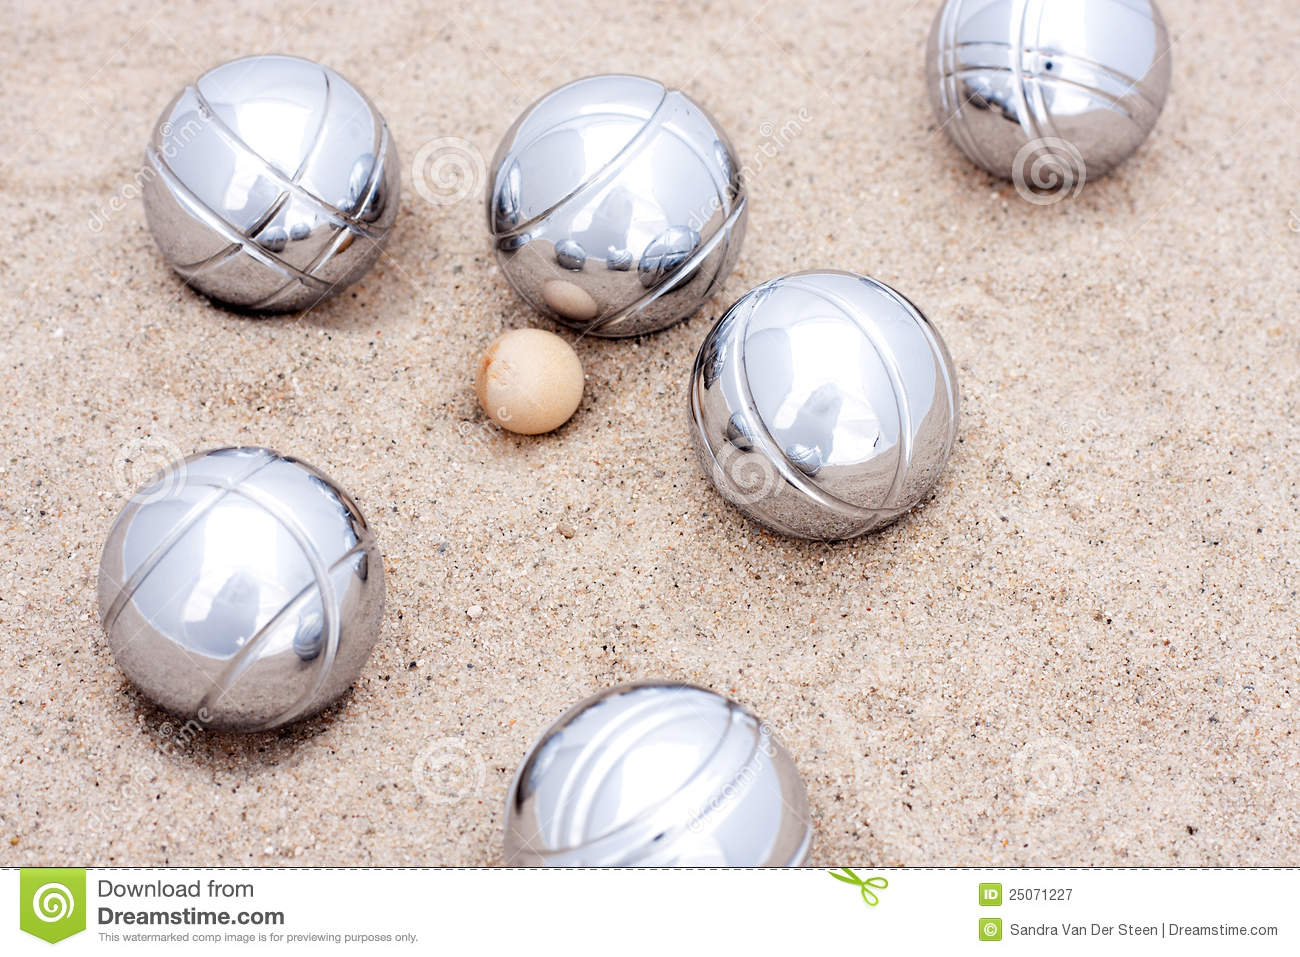 game of jeu de boule silver metal balls in sand stock image image of ball ballgame 25071227. Black Bedroom Furniture Sets. Home Design Ideas